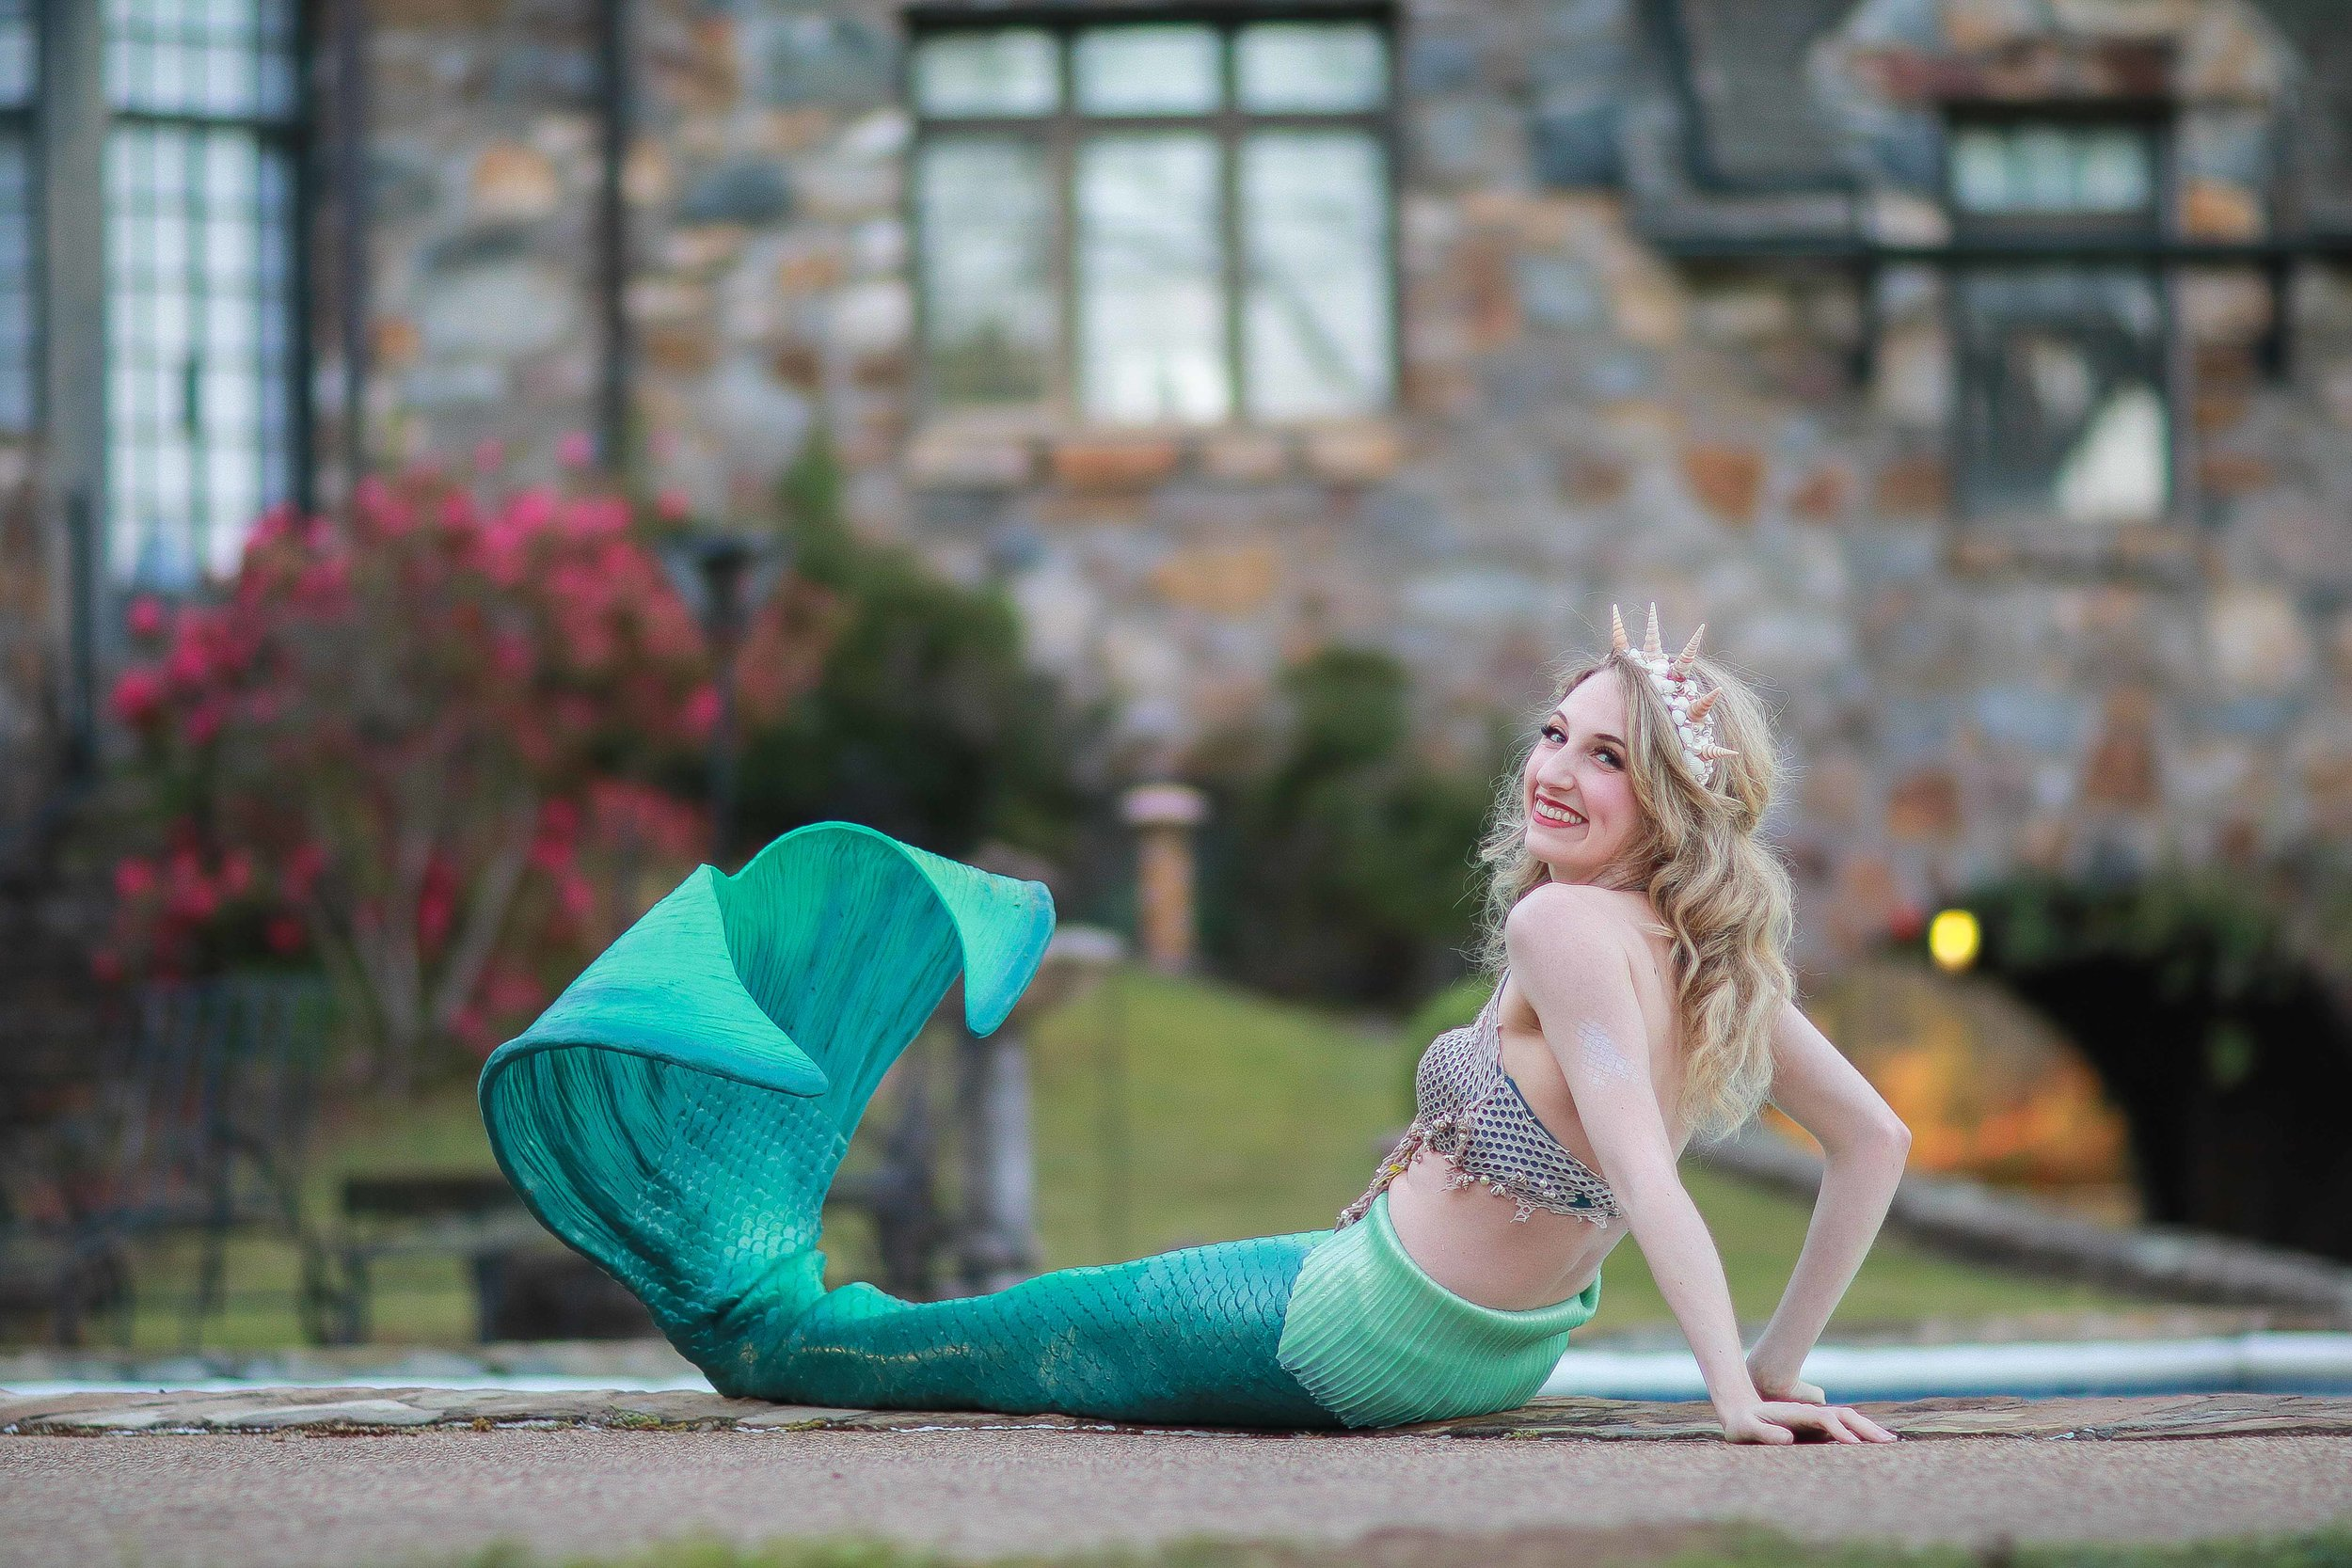 Emerald/Mint Tail Mermaid